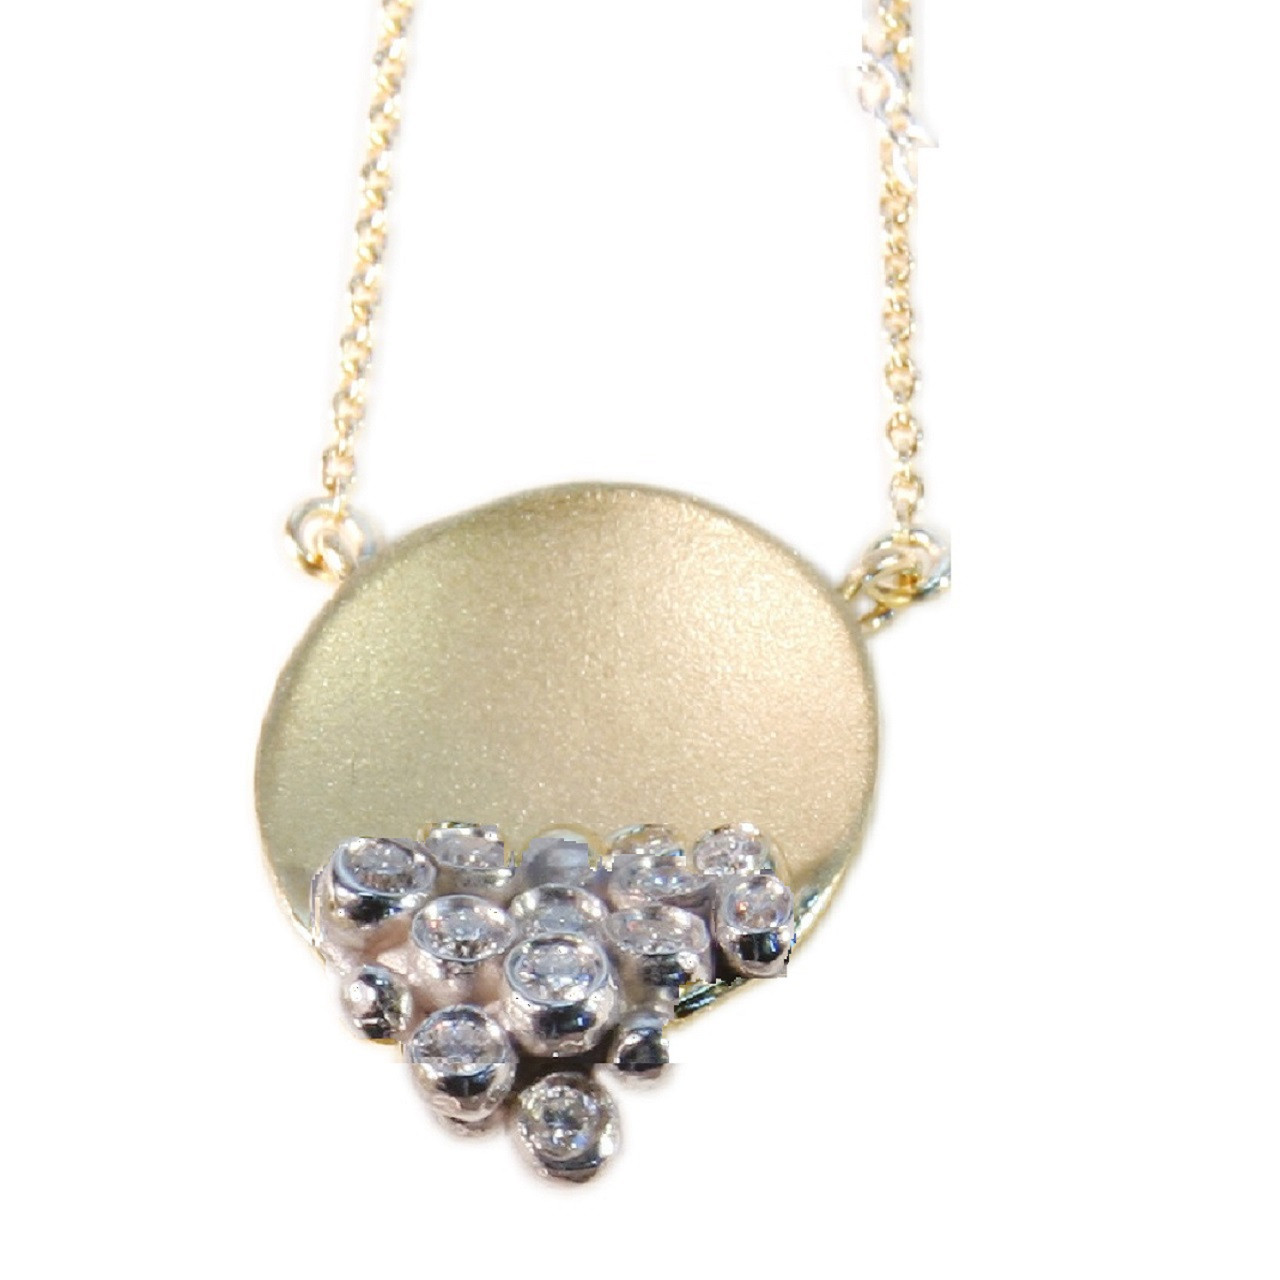 The Bowl of Overflowing Diamonds Diamond necklace in silver and/or gold (solid or plate) with diamonds.   Shown here in gold with silver dots of diamonds.